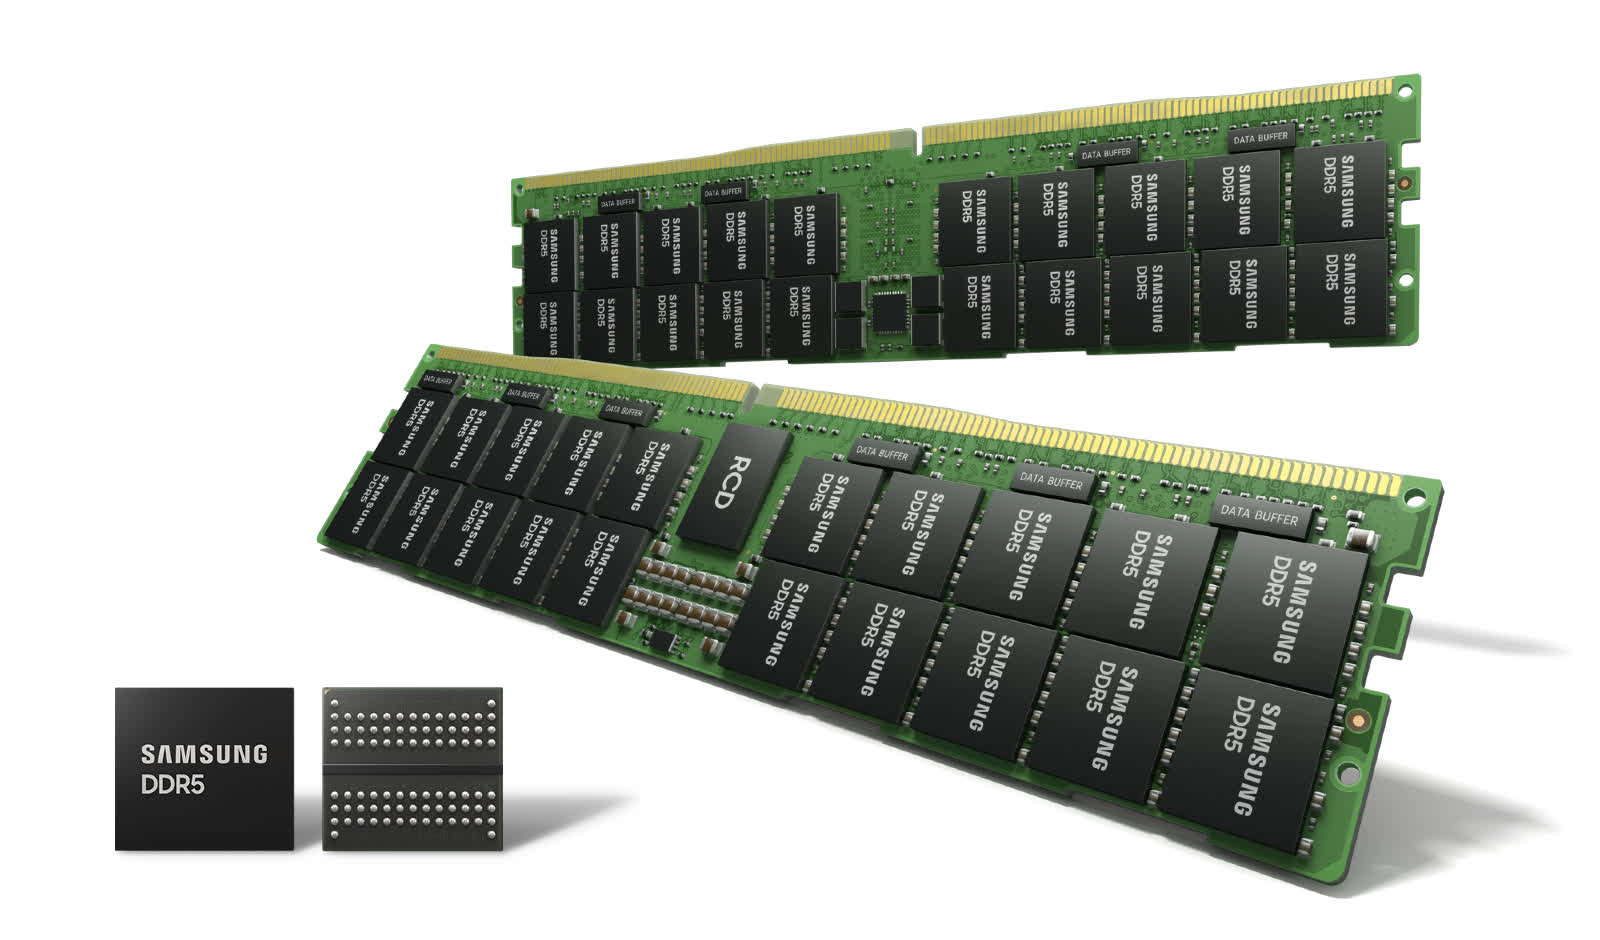 Samsung begins production of 14nm EUV DDR5 DRAM, unlocks speeds of up to 7.2 Gbps